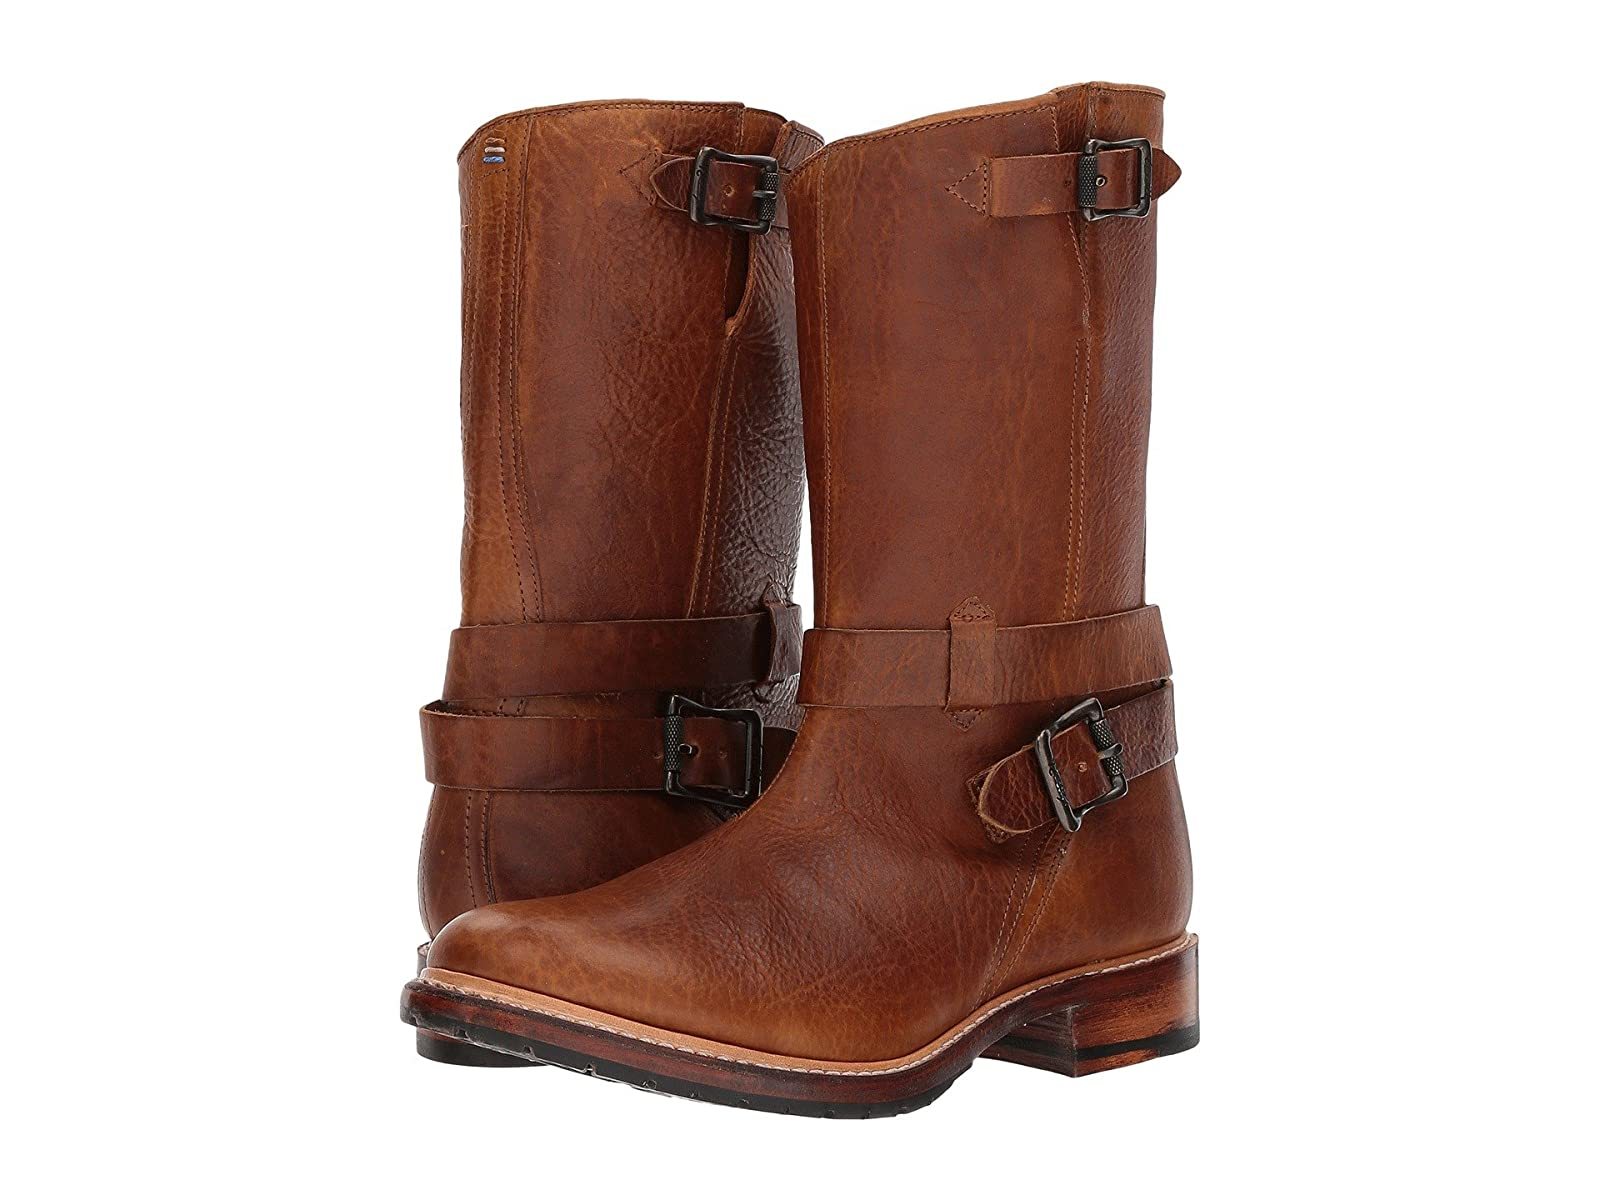 Two24 by Ariat 580Economical and quality shoes